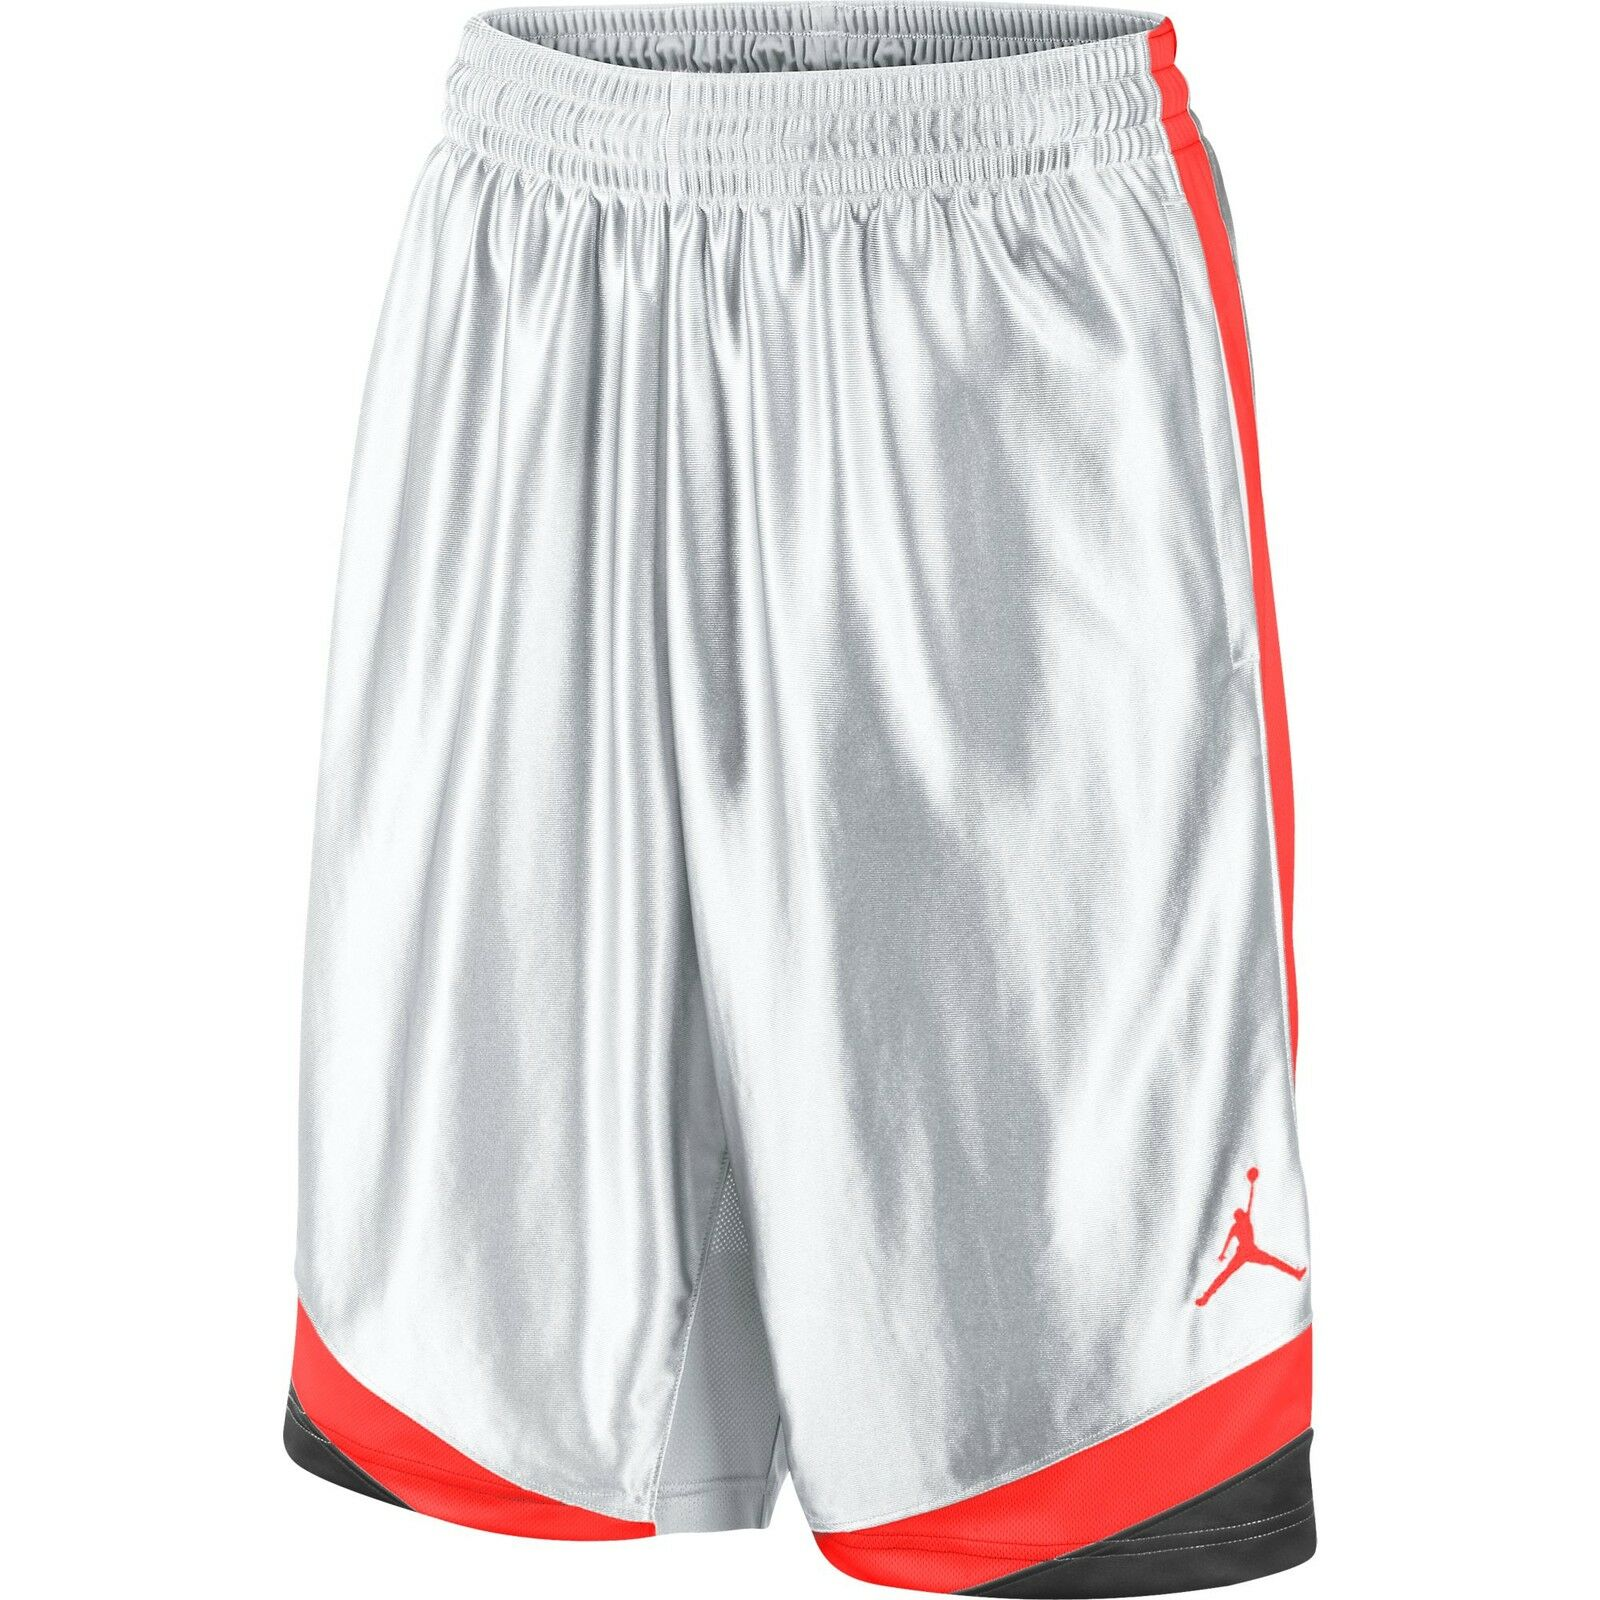 Jordan Court Vision Men's Basketball Shorts White bluee Infrared 576638-104